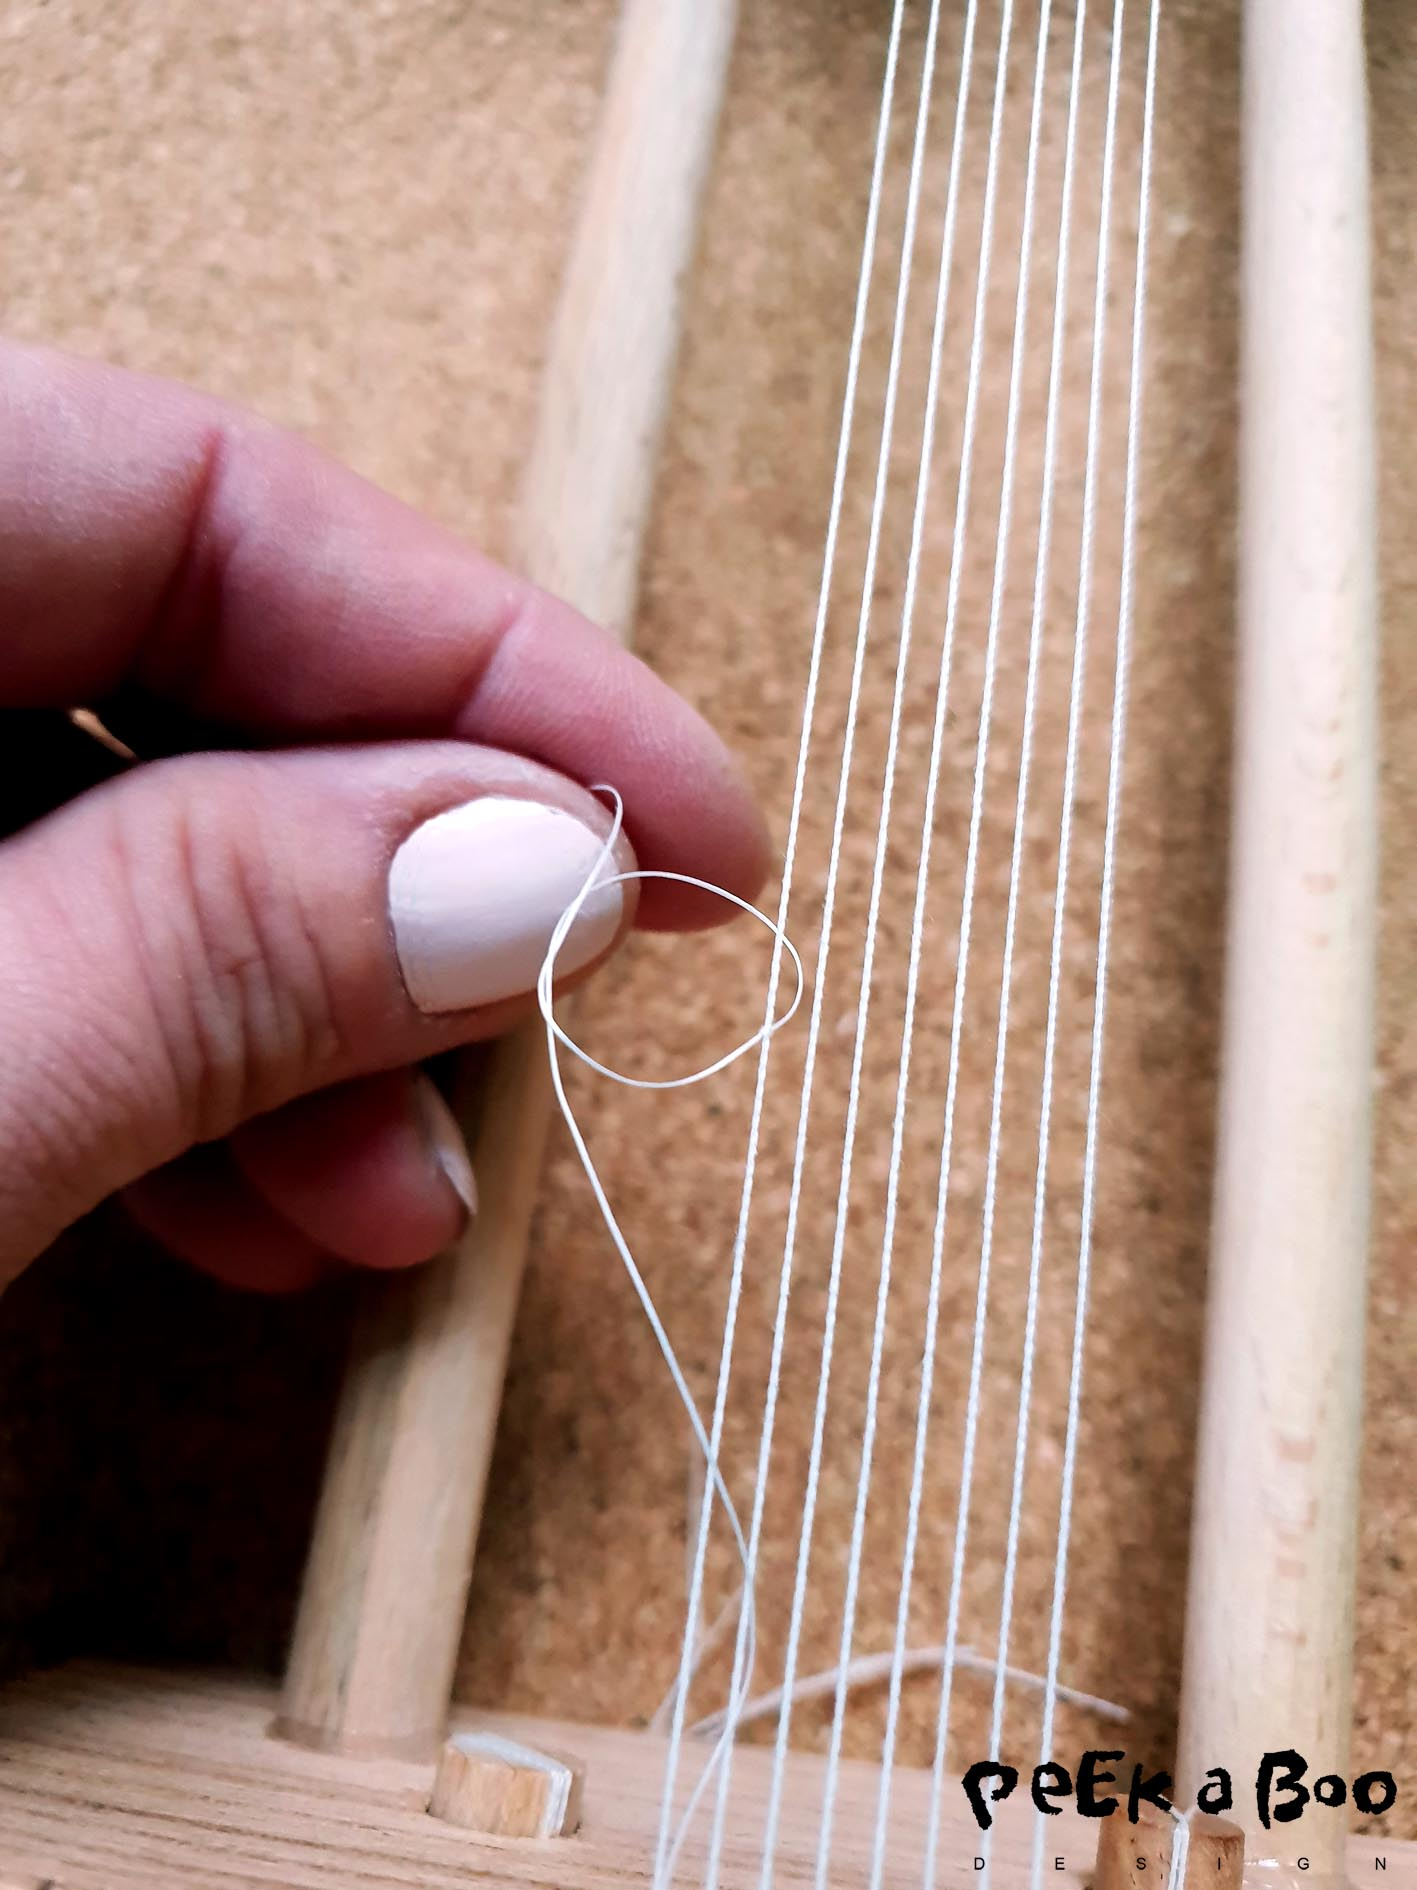 Thread your split needle with a long thread. I have made my approx. 2 m. It must now be attached to your outer left thread on the loom. Tie a double knot.